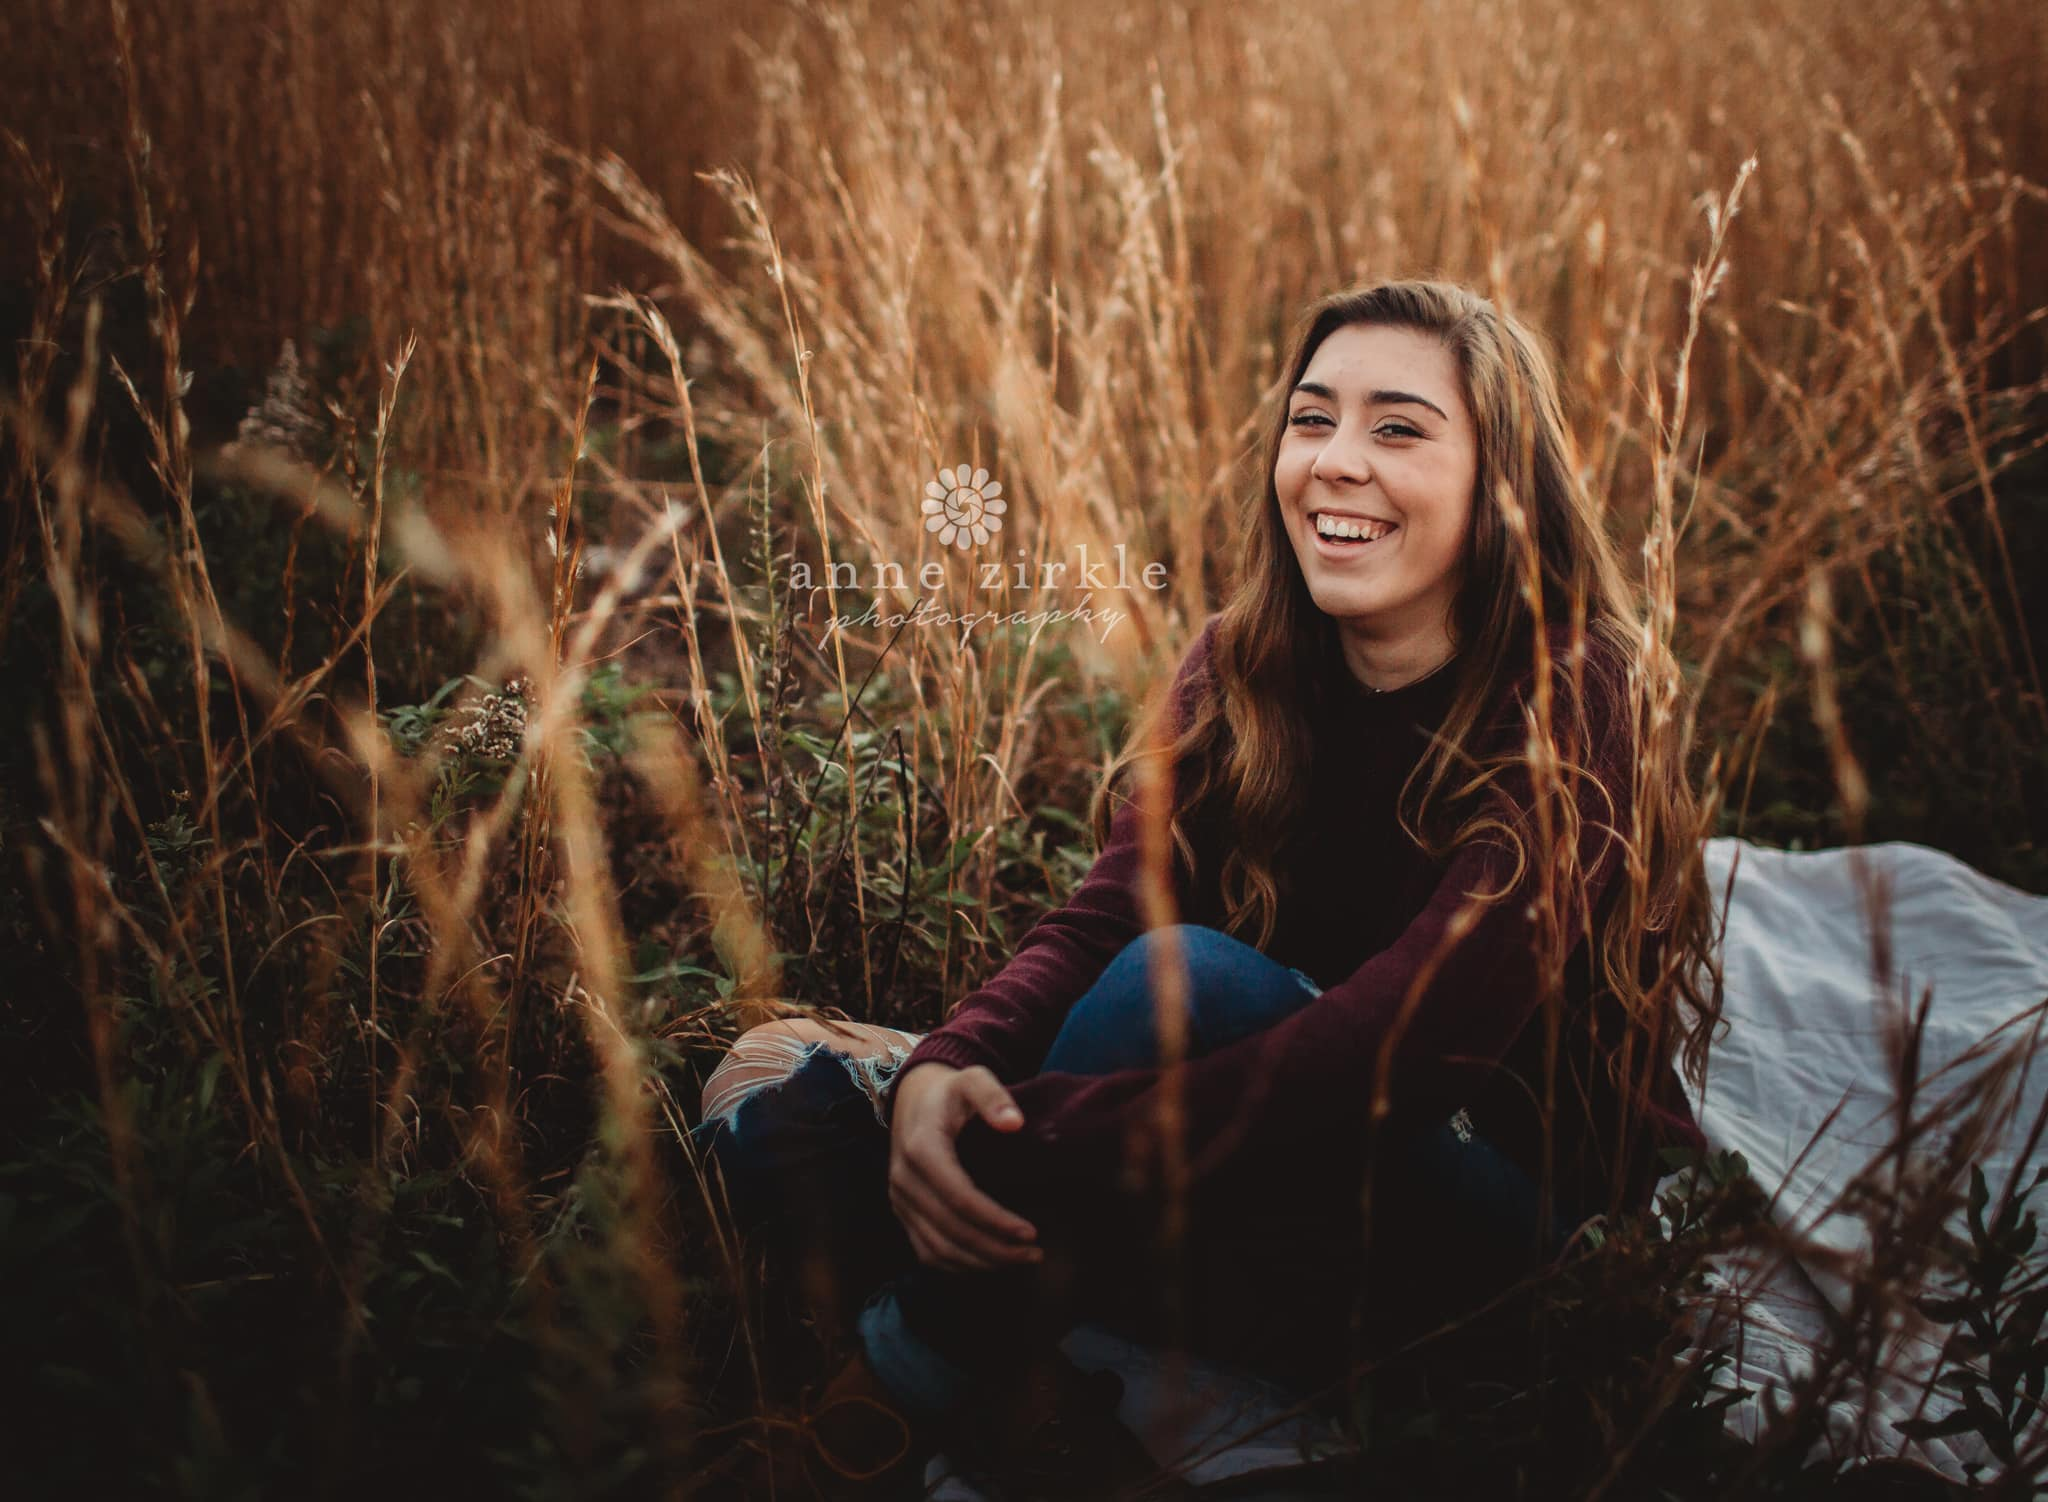 senior girl laughing in fall field #mooresville #northcarolina #davidson #lakenorman #southiredell #pinelakeprep #highschool #highschoolsenior #highschoolseniors #seniors